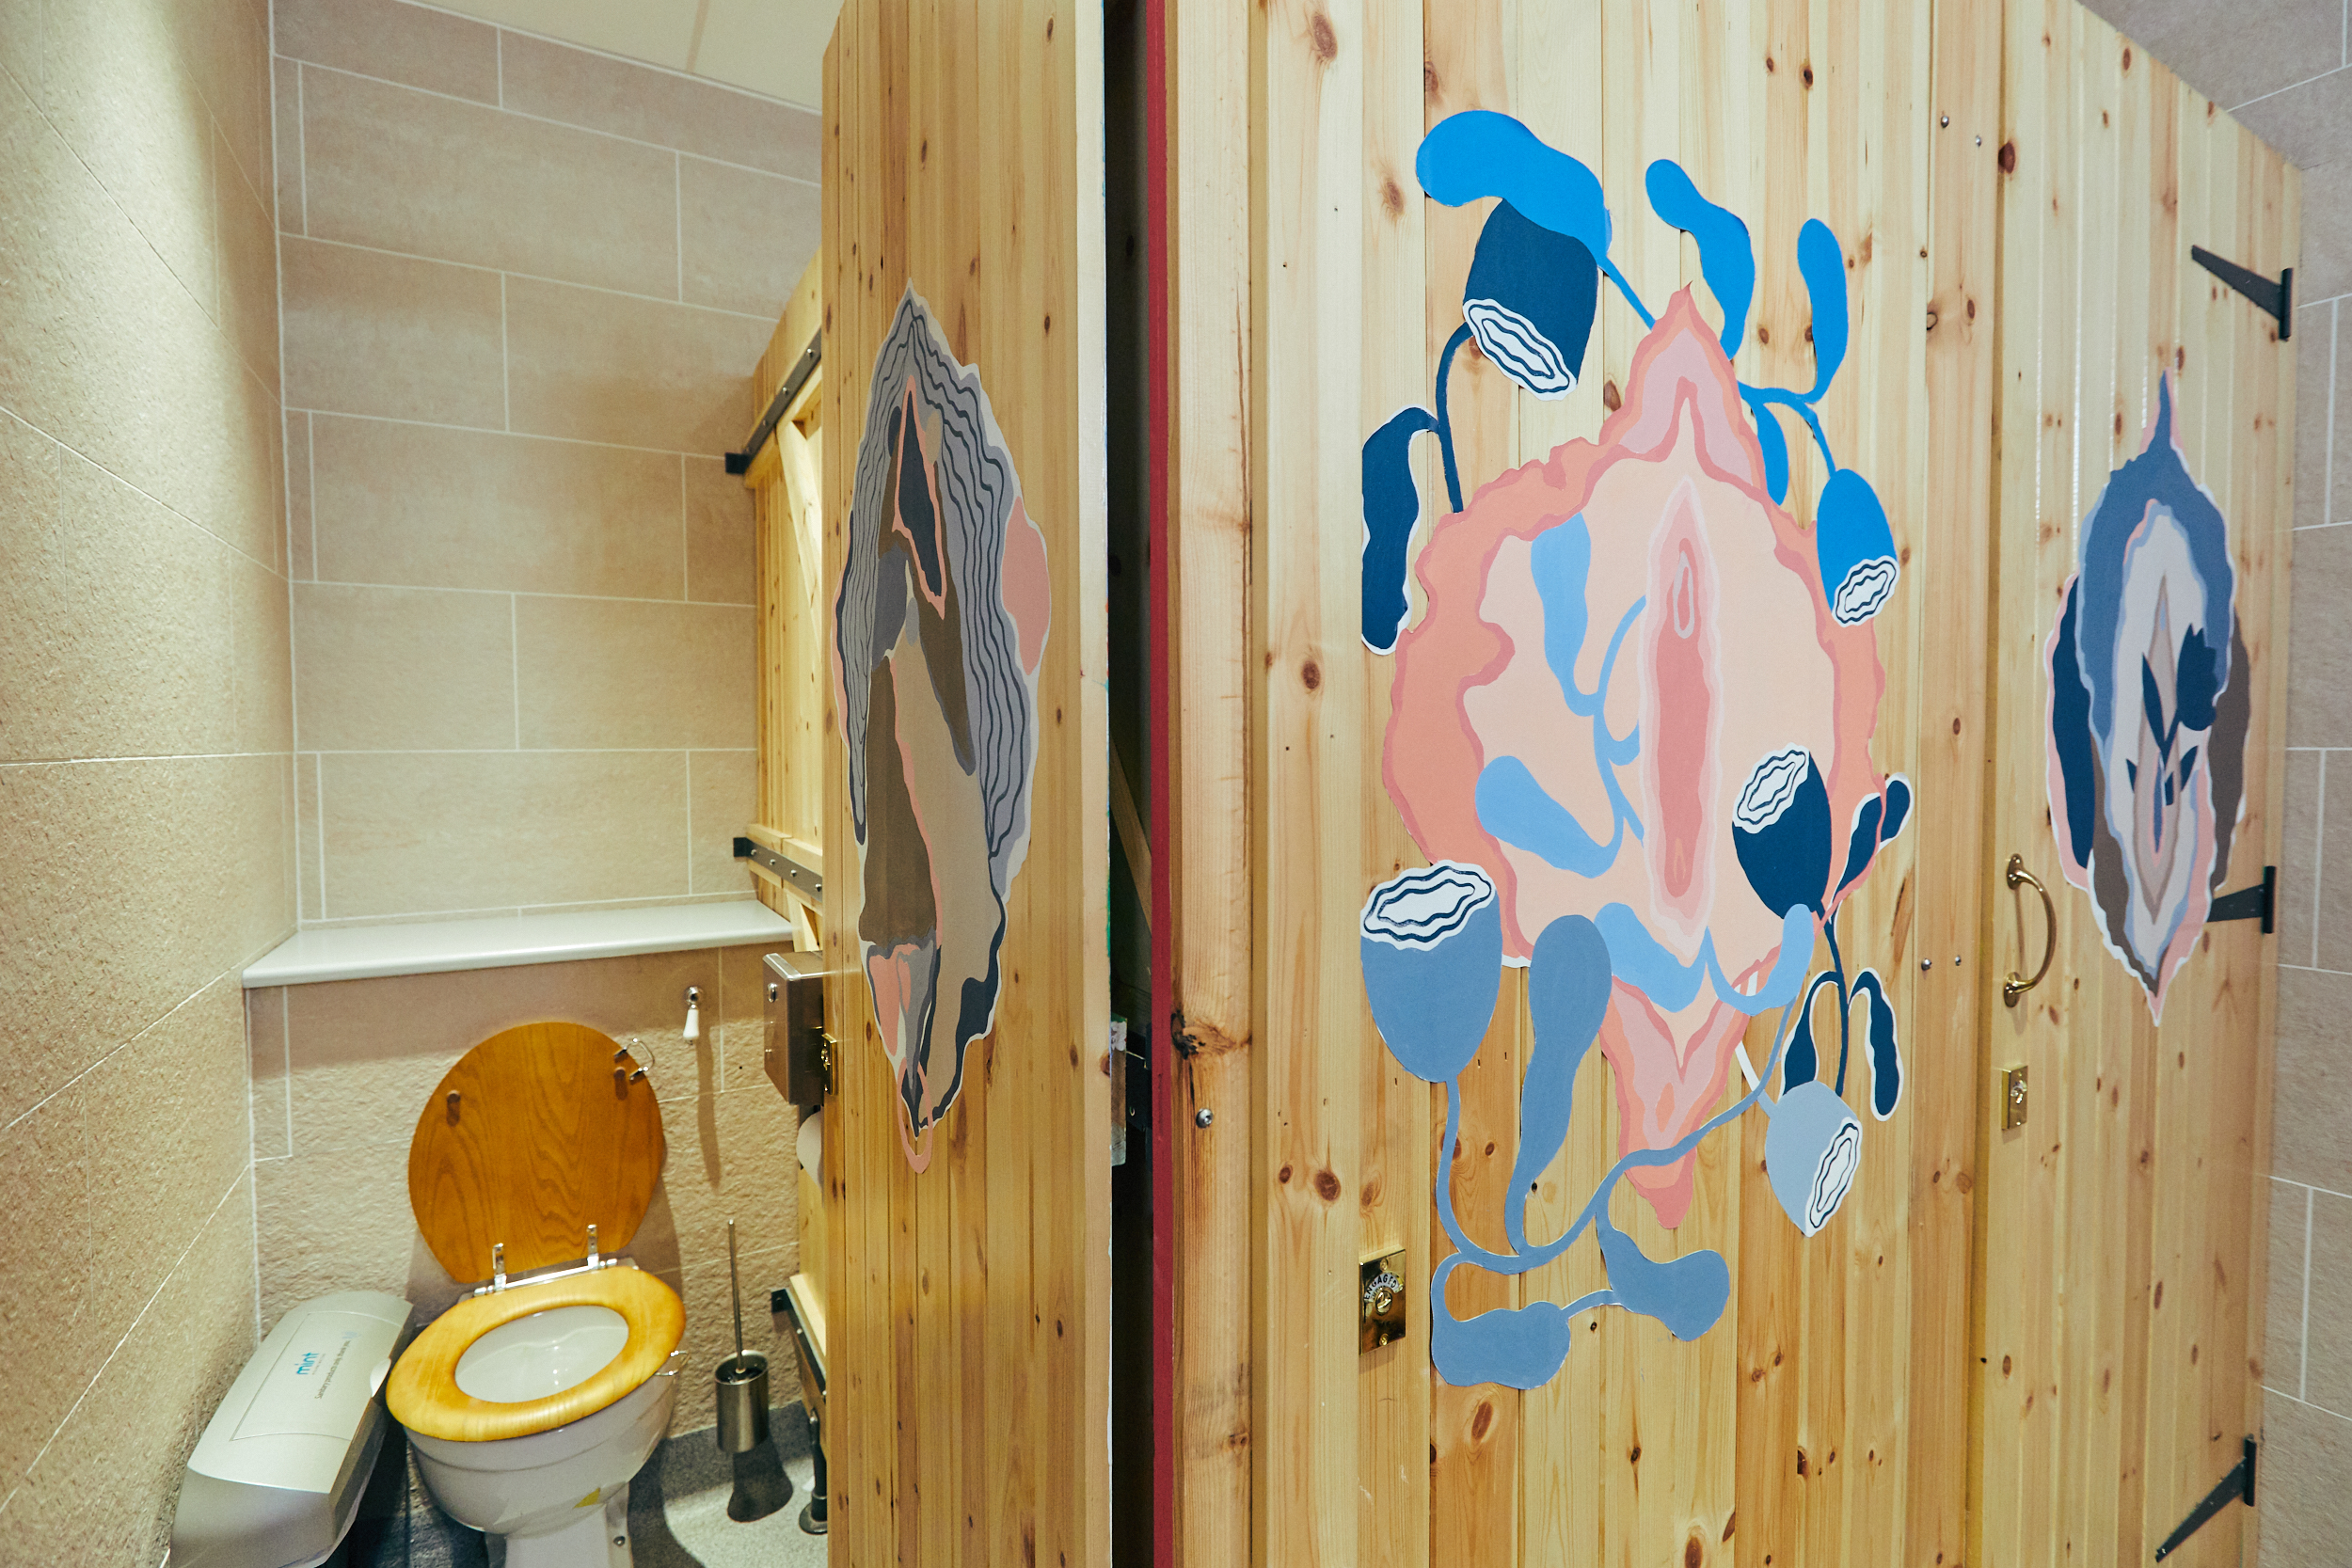 Bodyform and AMV BBDO Viva La Vulva Bathroom Takeover